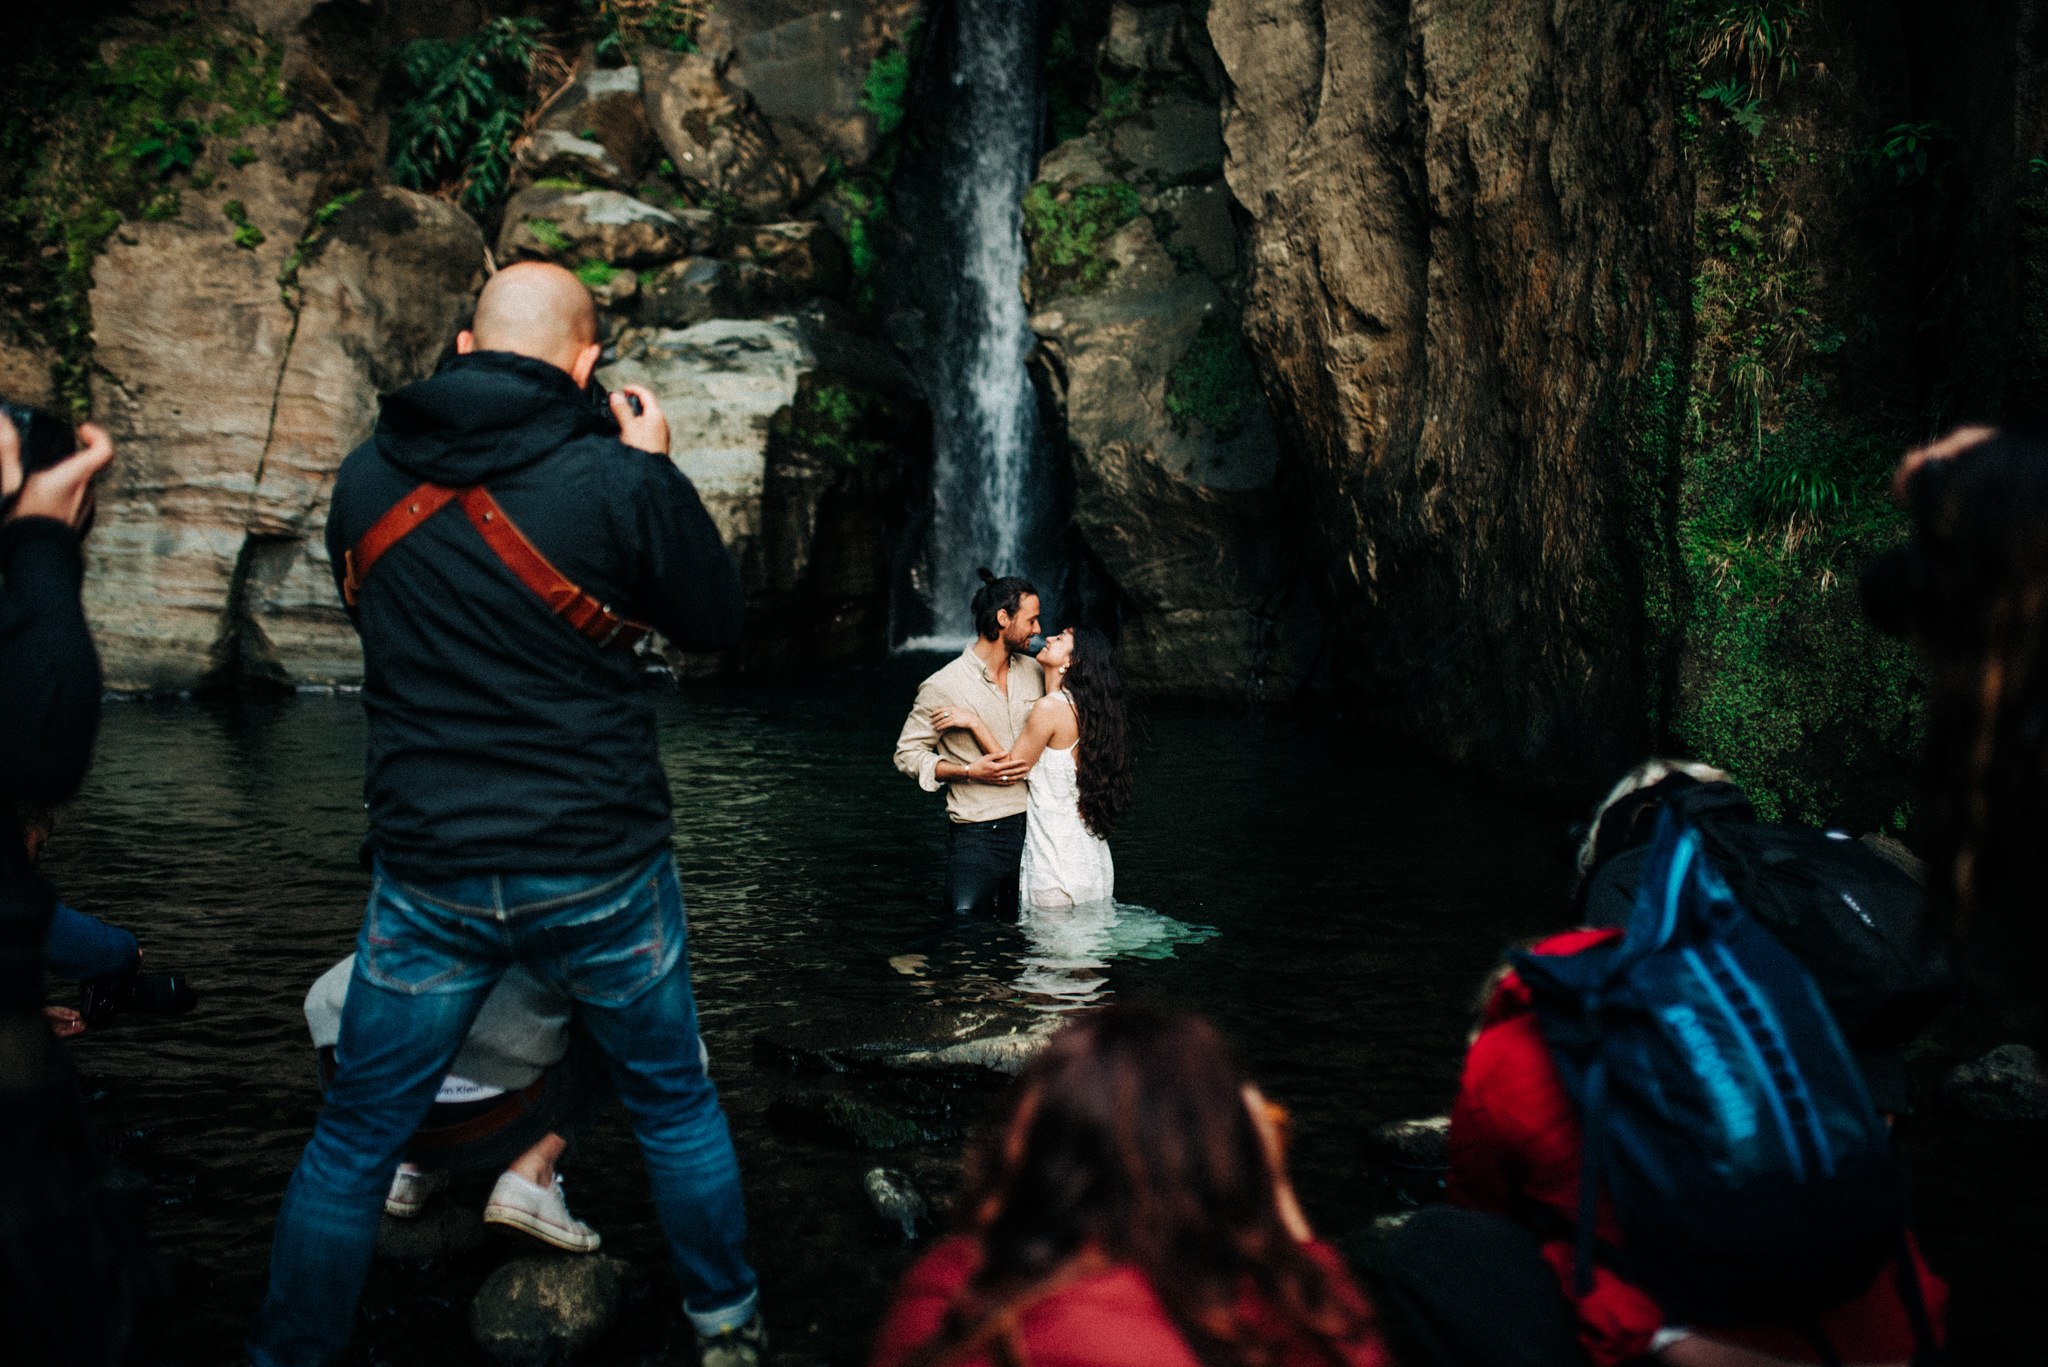 twyla jones photography - portugal azores waterfall couples engagement elopement -41.jpg